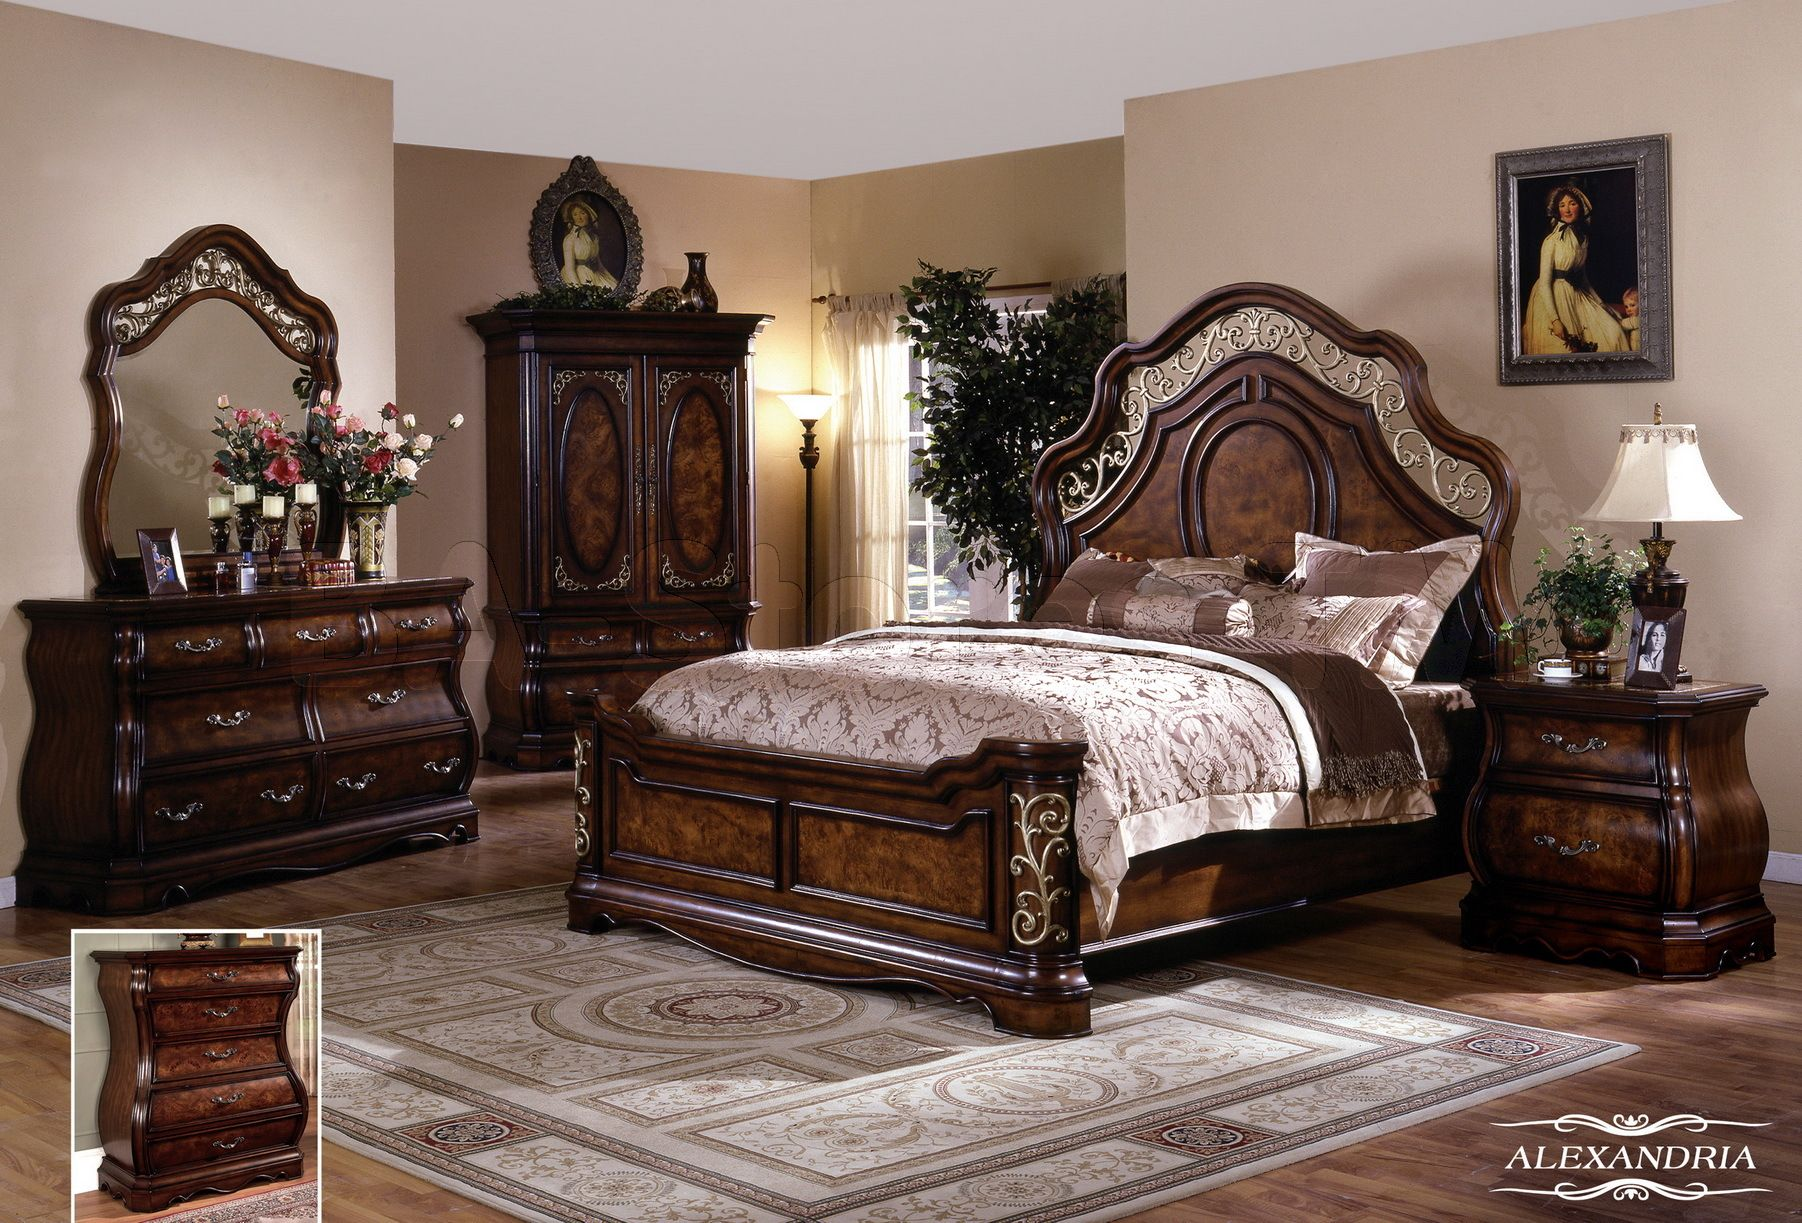 Alexandria 5 pc bedroom set queen bed dresser mirror for Bedroom dresser sets